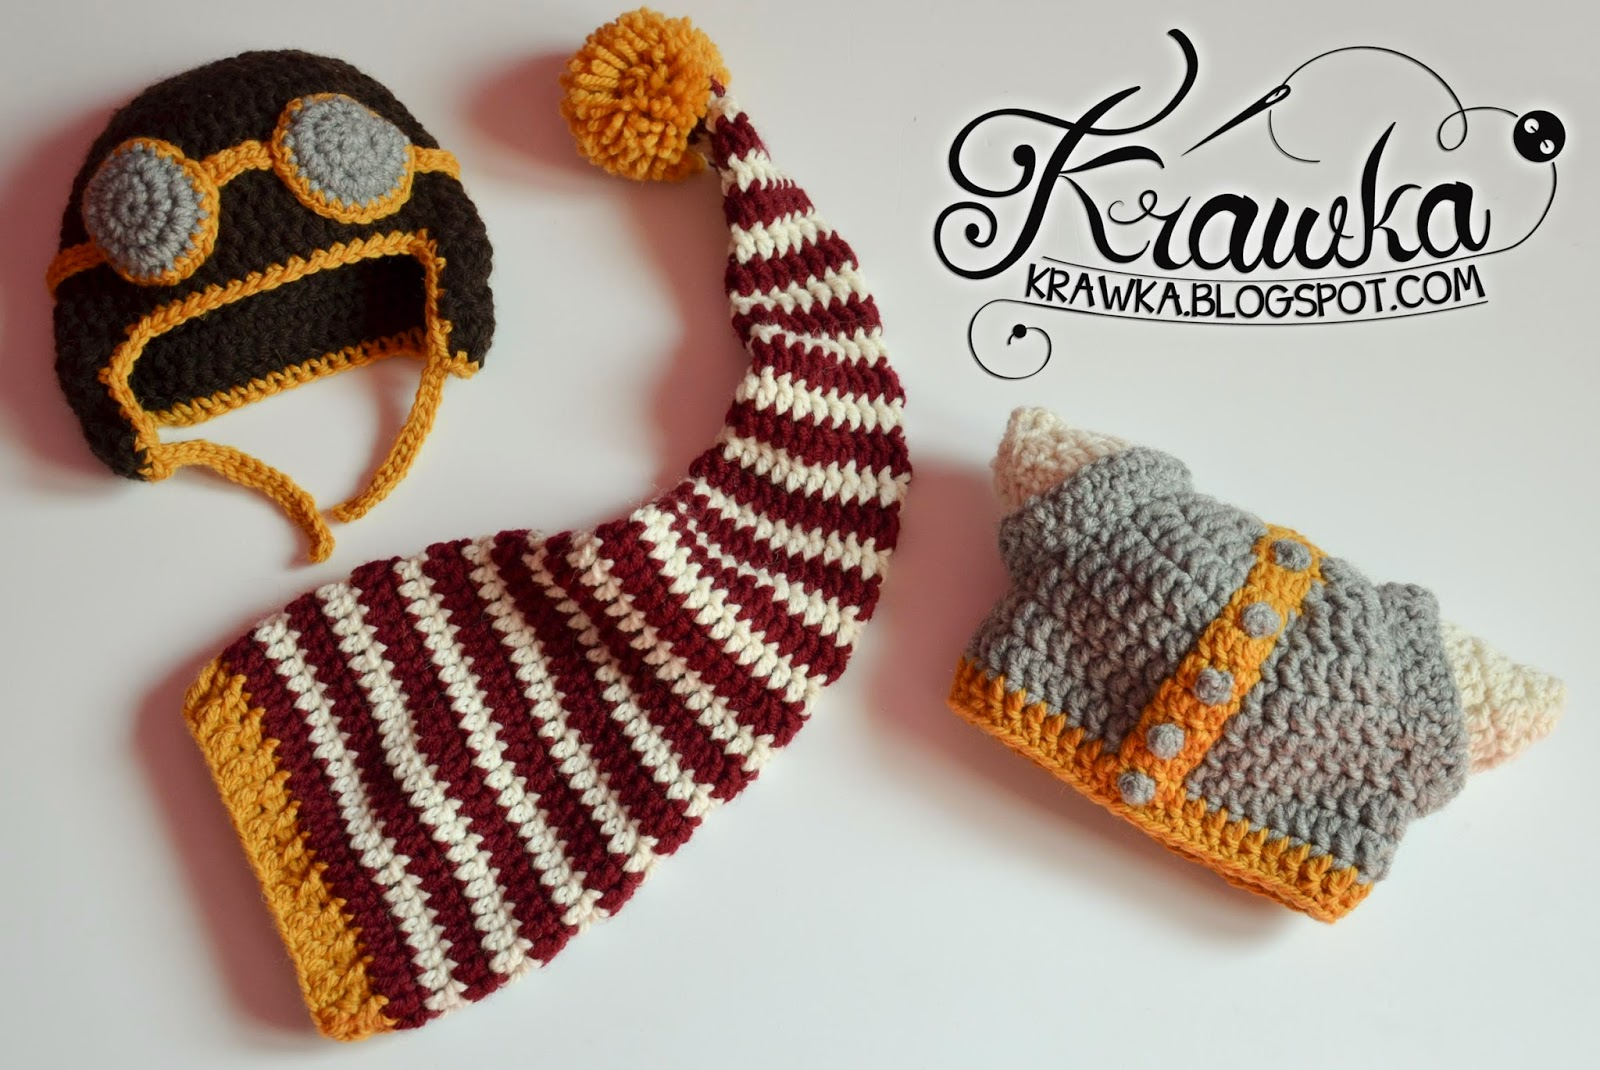 Krawka: Set of three crochet hats for a newborn - aviator, elf and viking hats. Props for a photo session of a newborn baby.